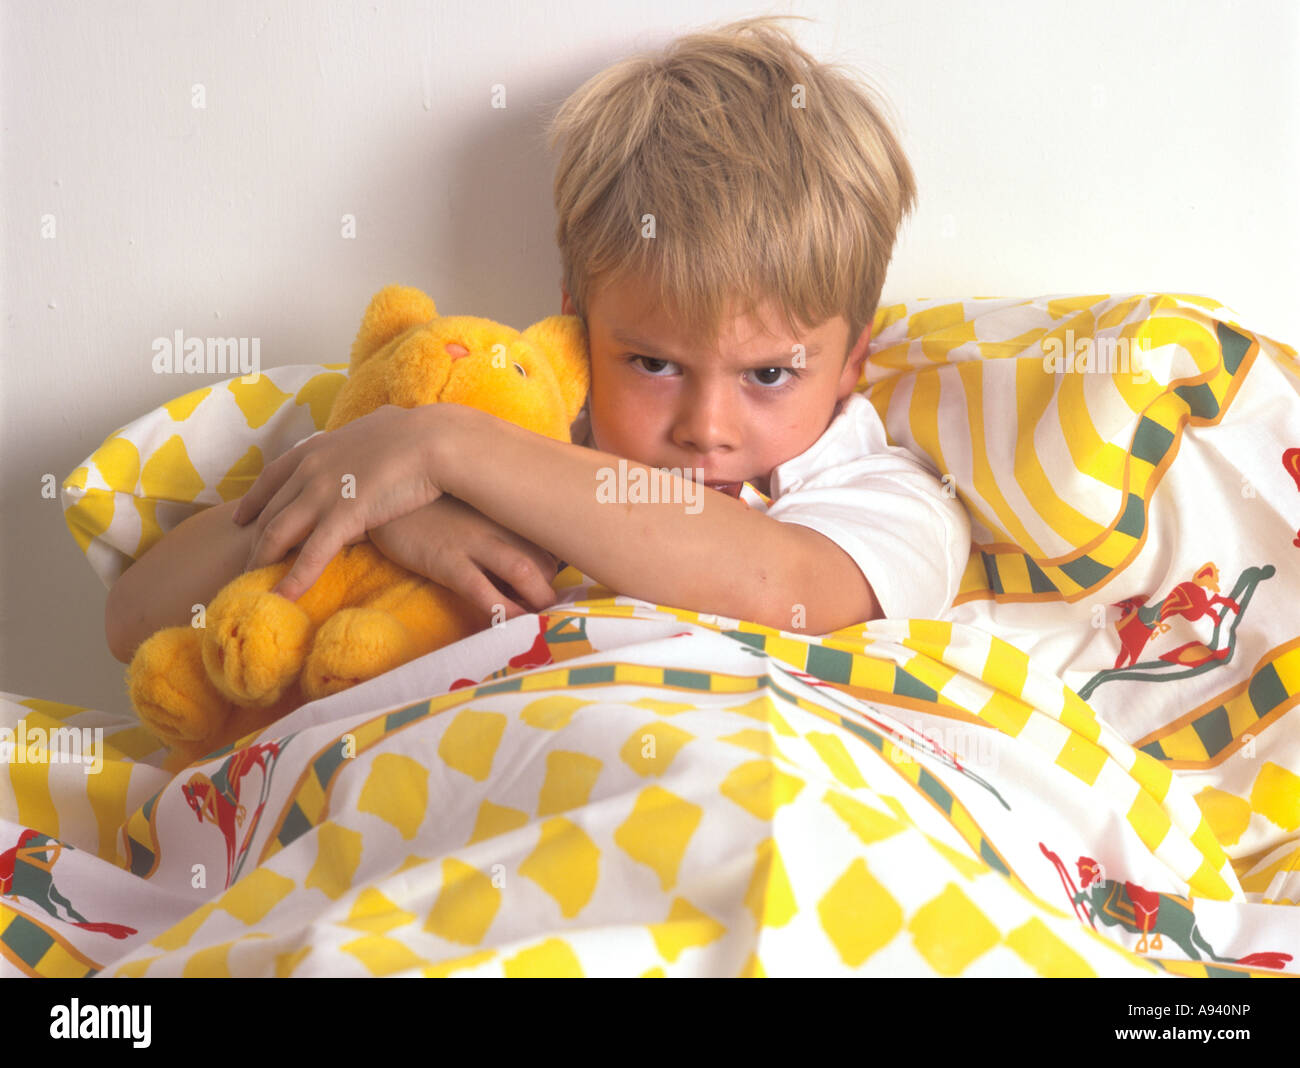 c8.alamy.com/compde/a940np/kleine-junge-wutend-in-...